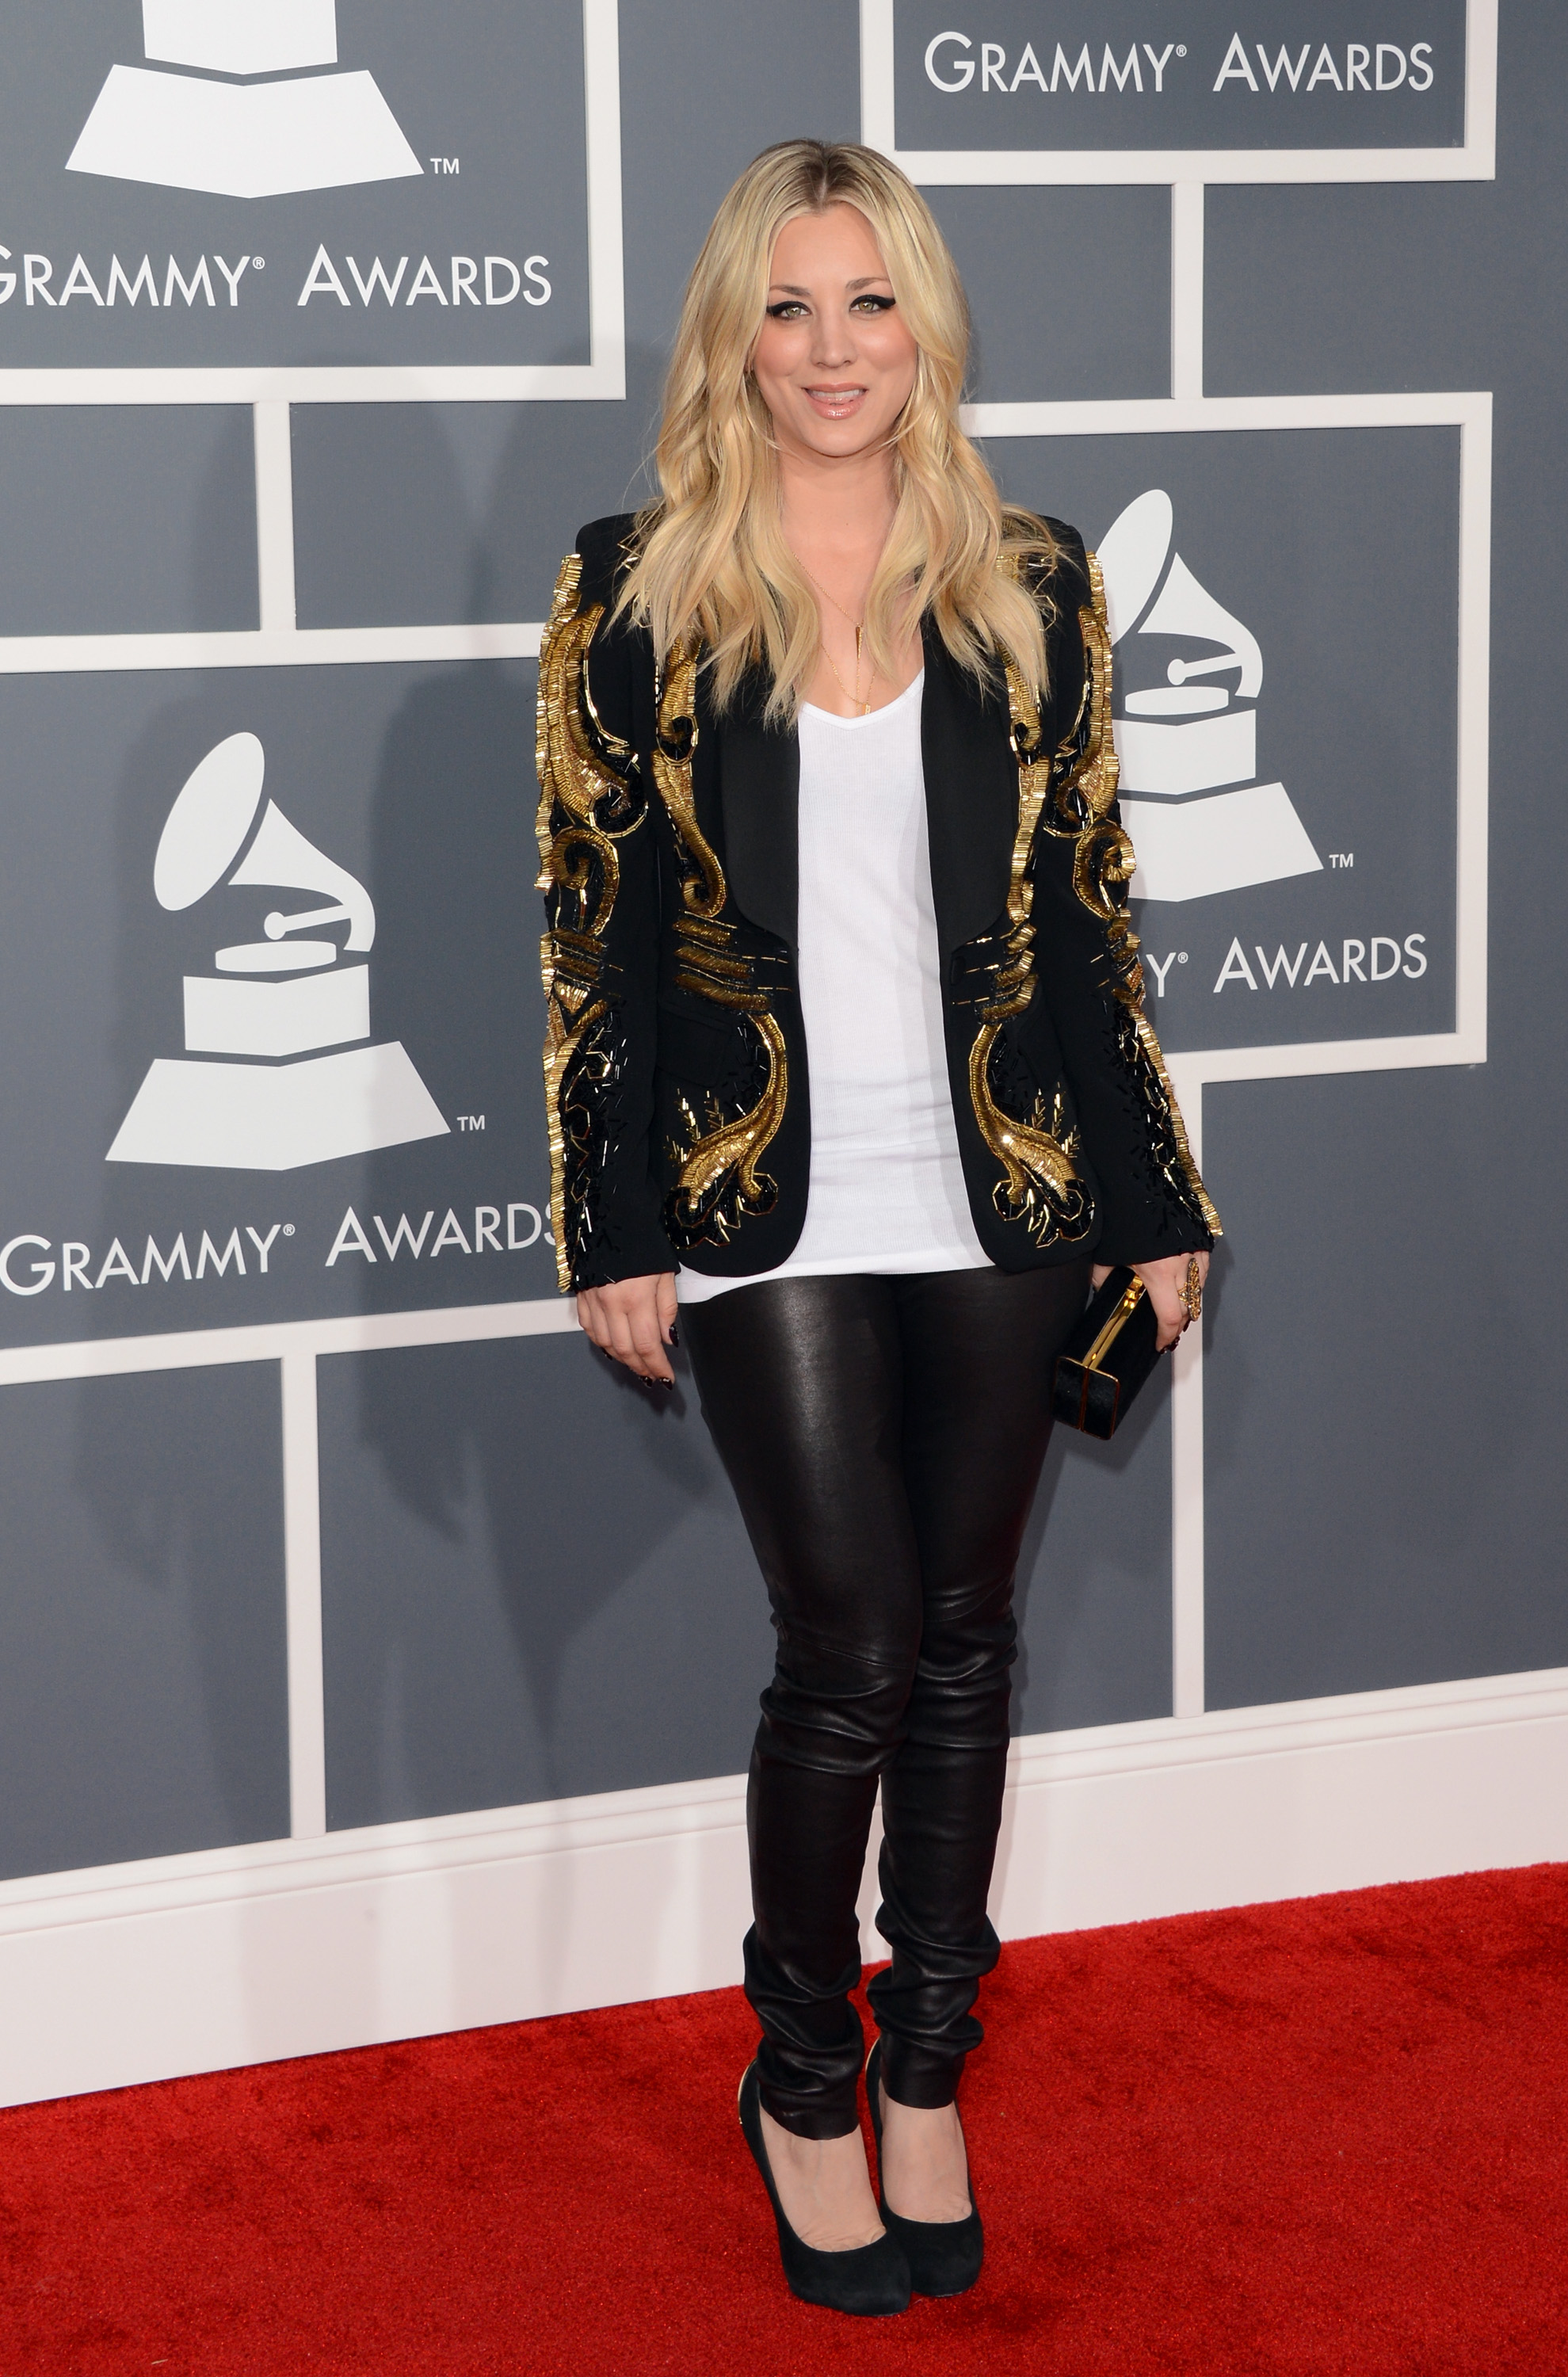 Kaley Cuoco sported a blazer at the Grammys.